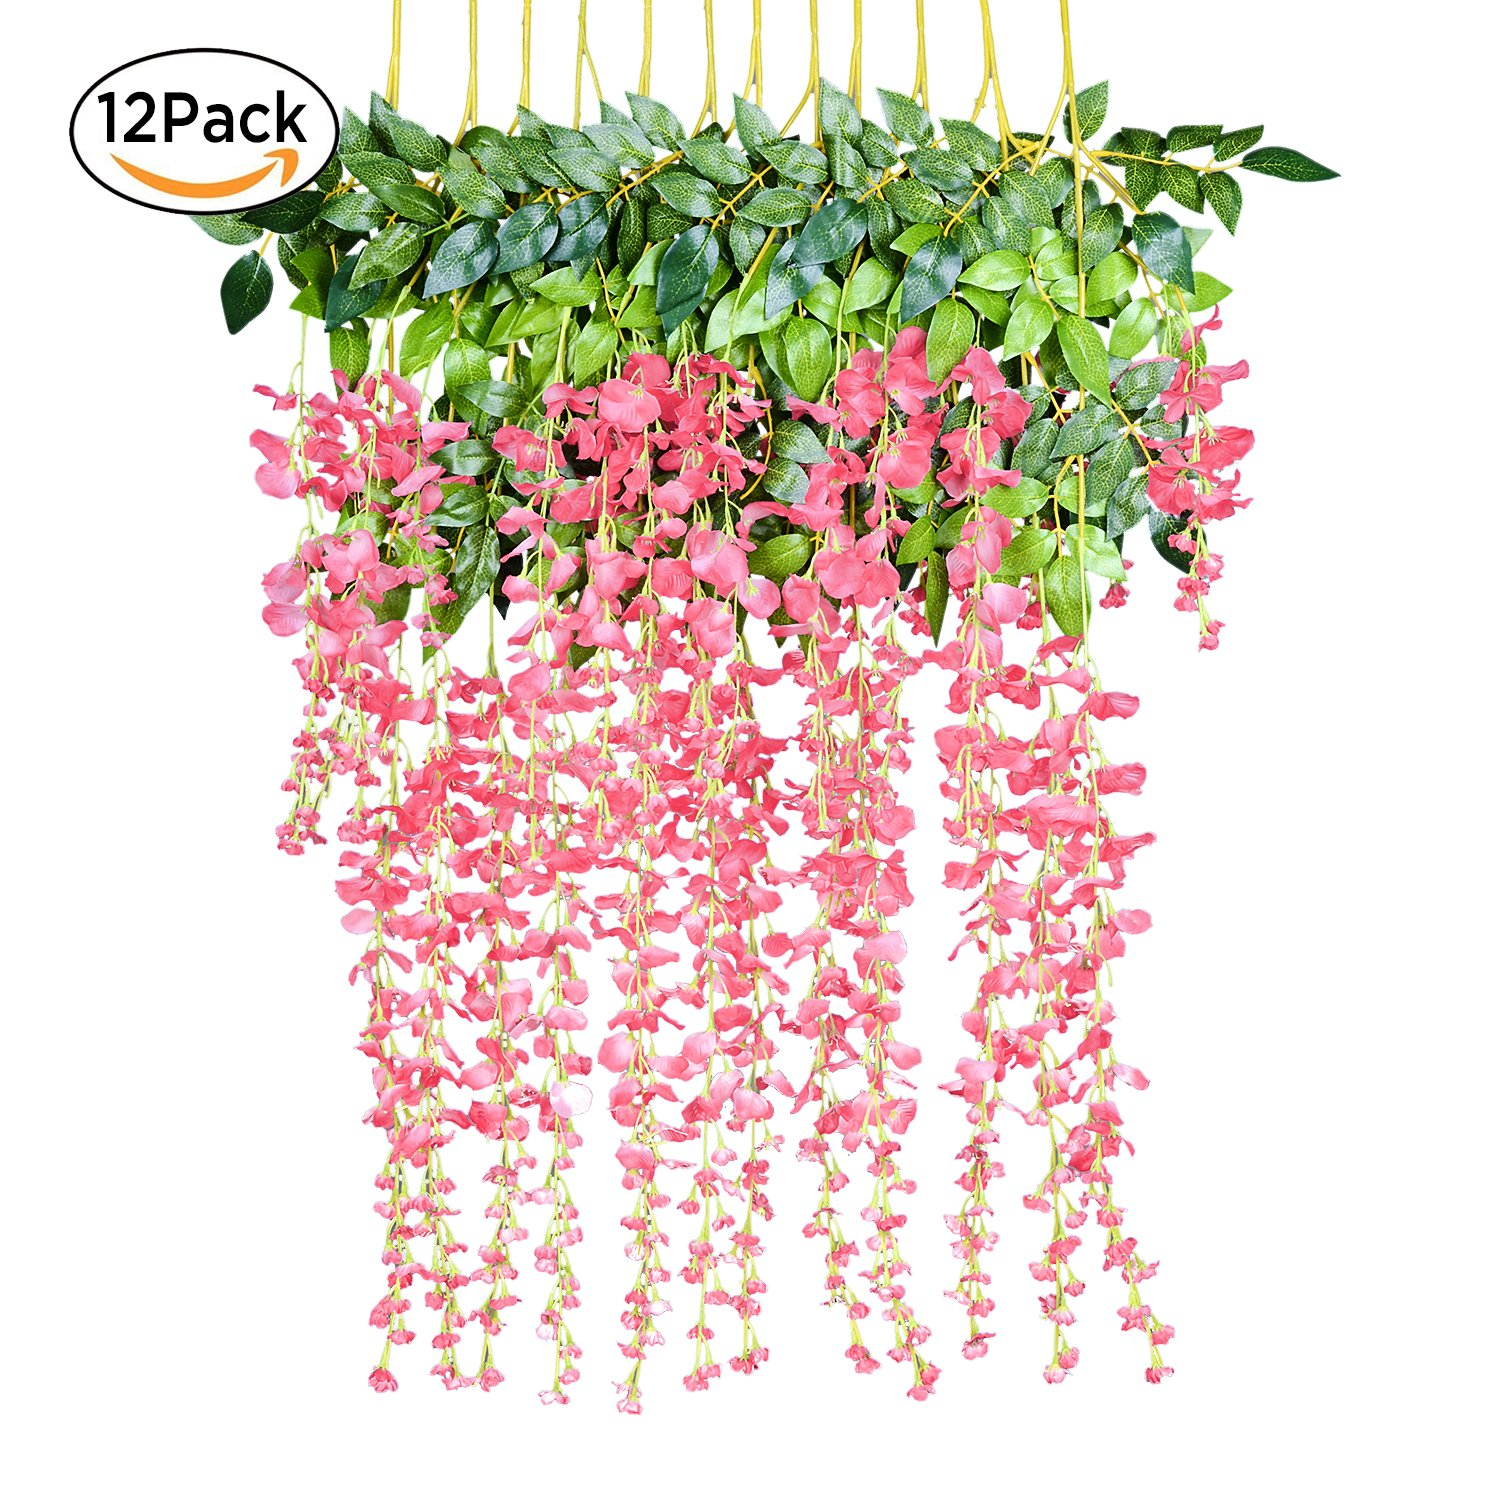 12 Pack 3.6 Feet/Piece Artificial Fake Wisteria Vine Ratta Hanging ...